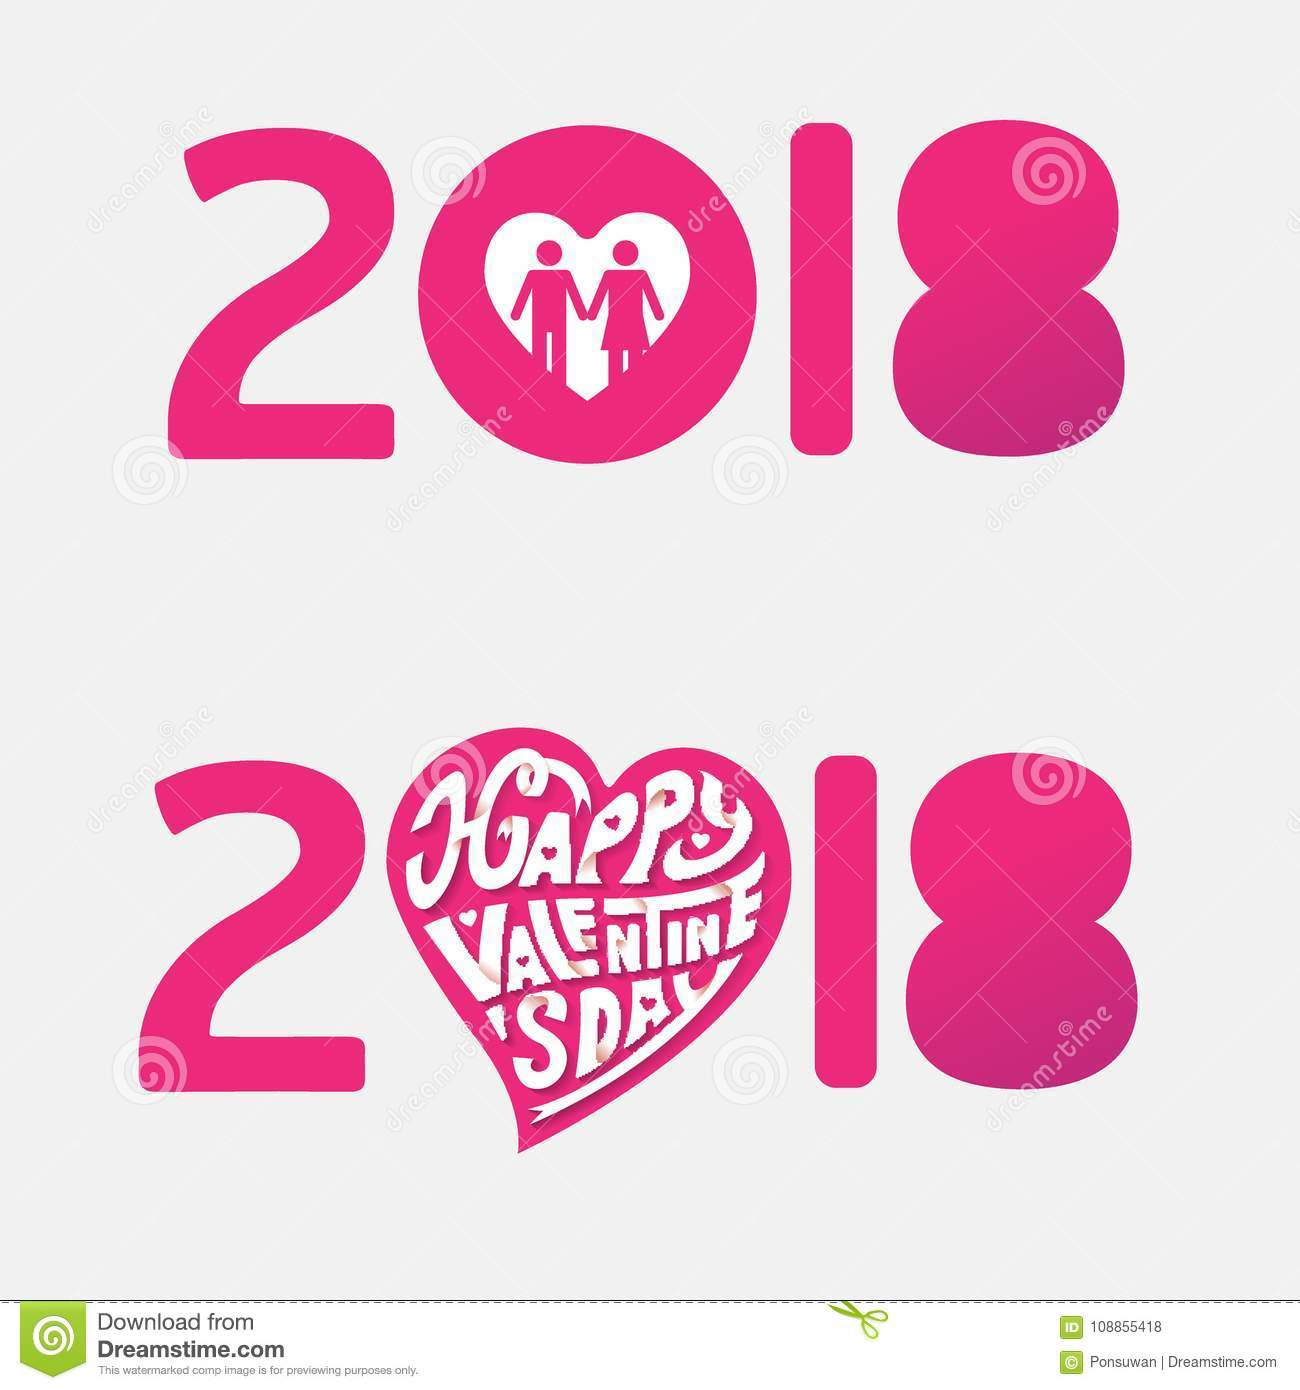 Happy Valentines Day 2018 Hand Drawing Vector Paper Craft Letter